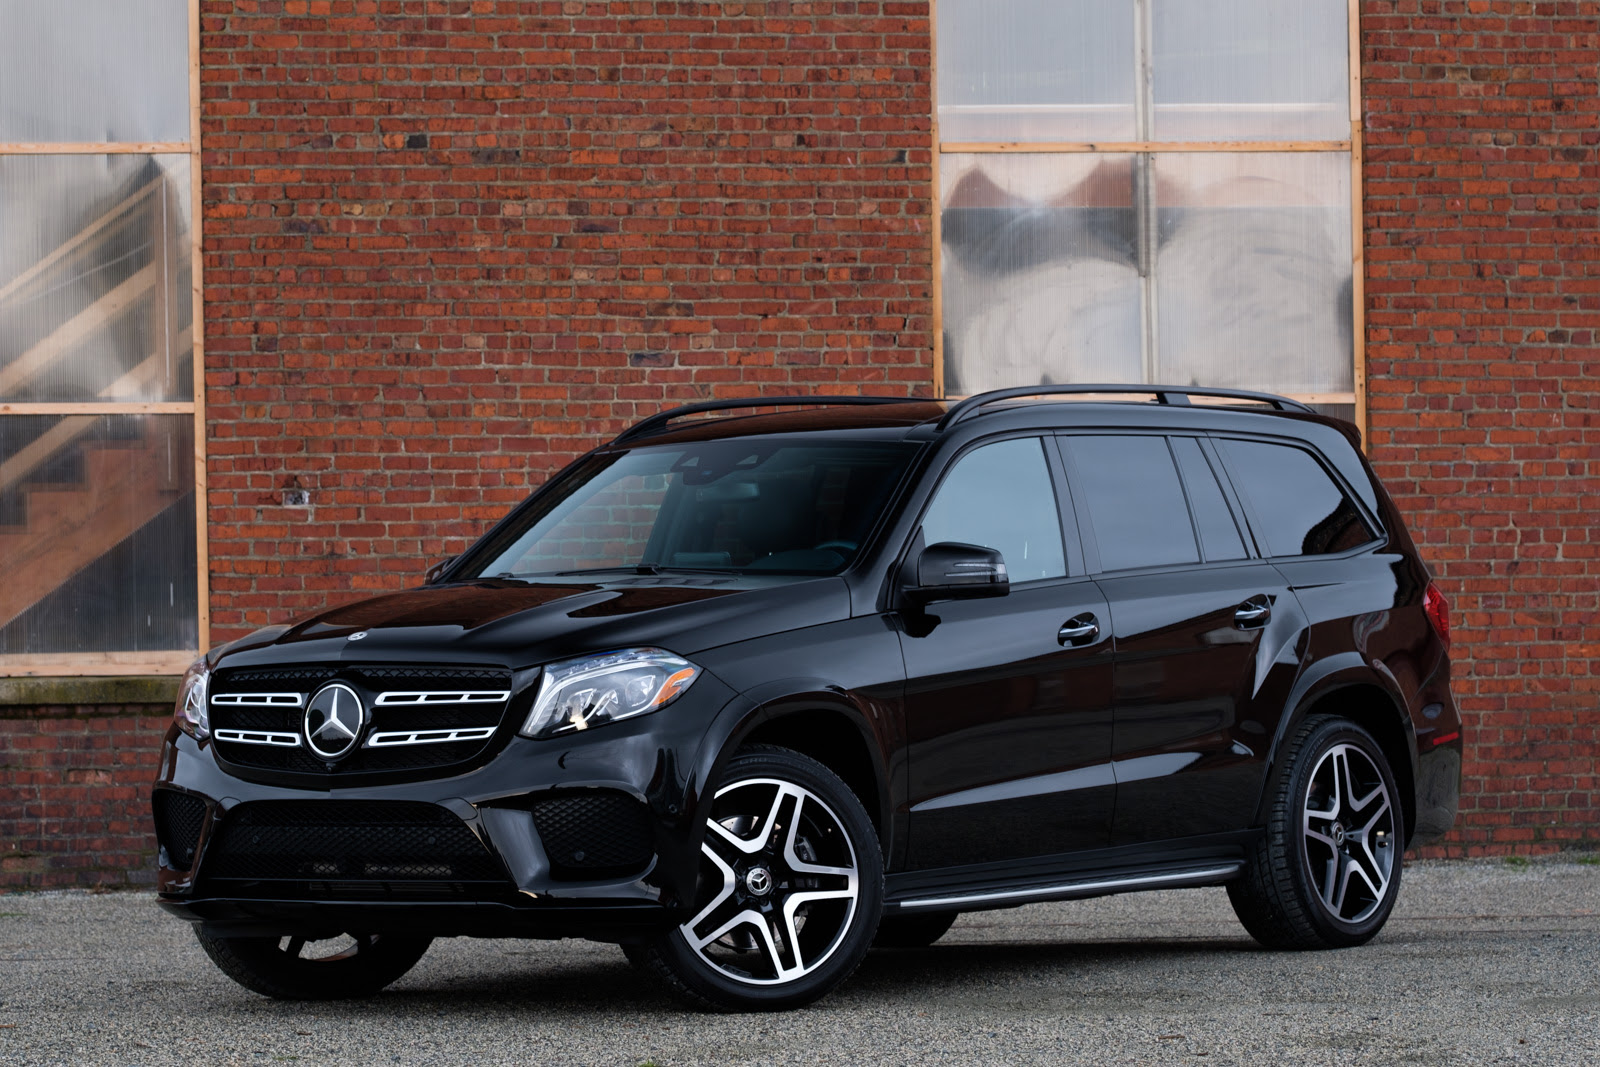 2018 Mercedes-Benz GLS 450 - Silver Arrow Cars Ltd.